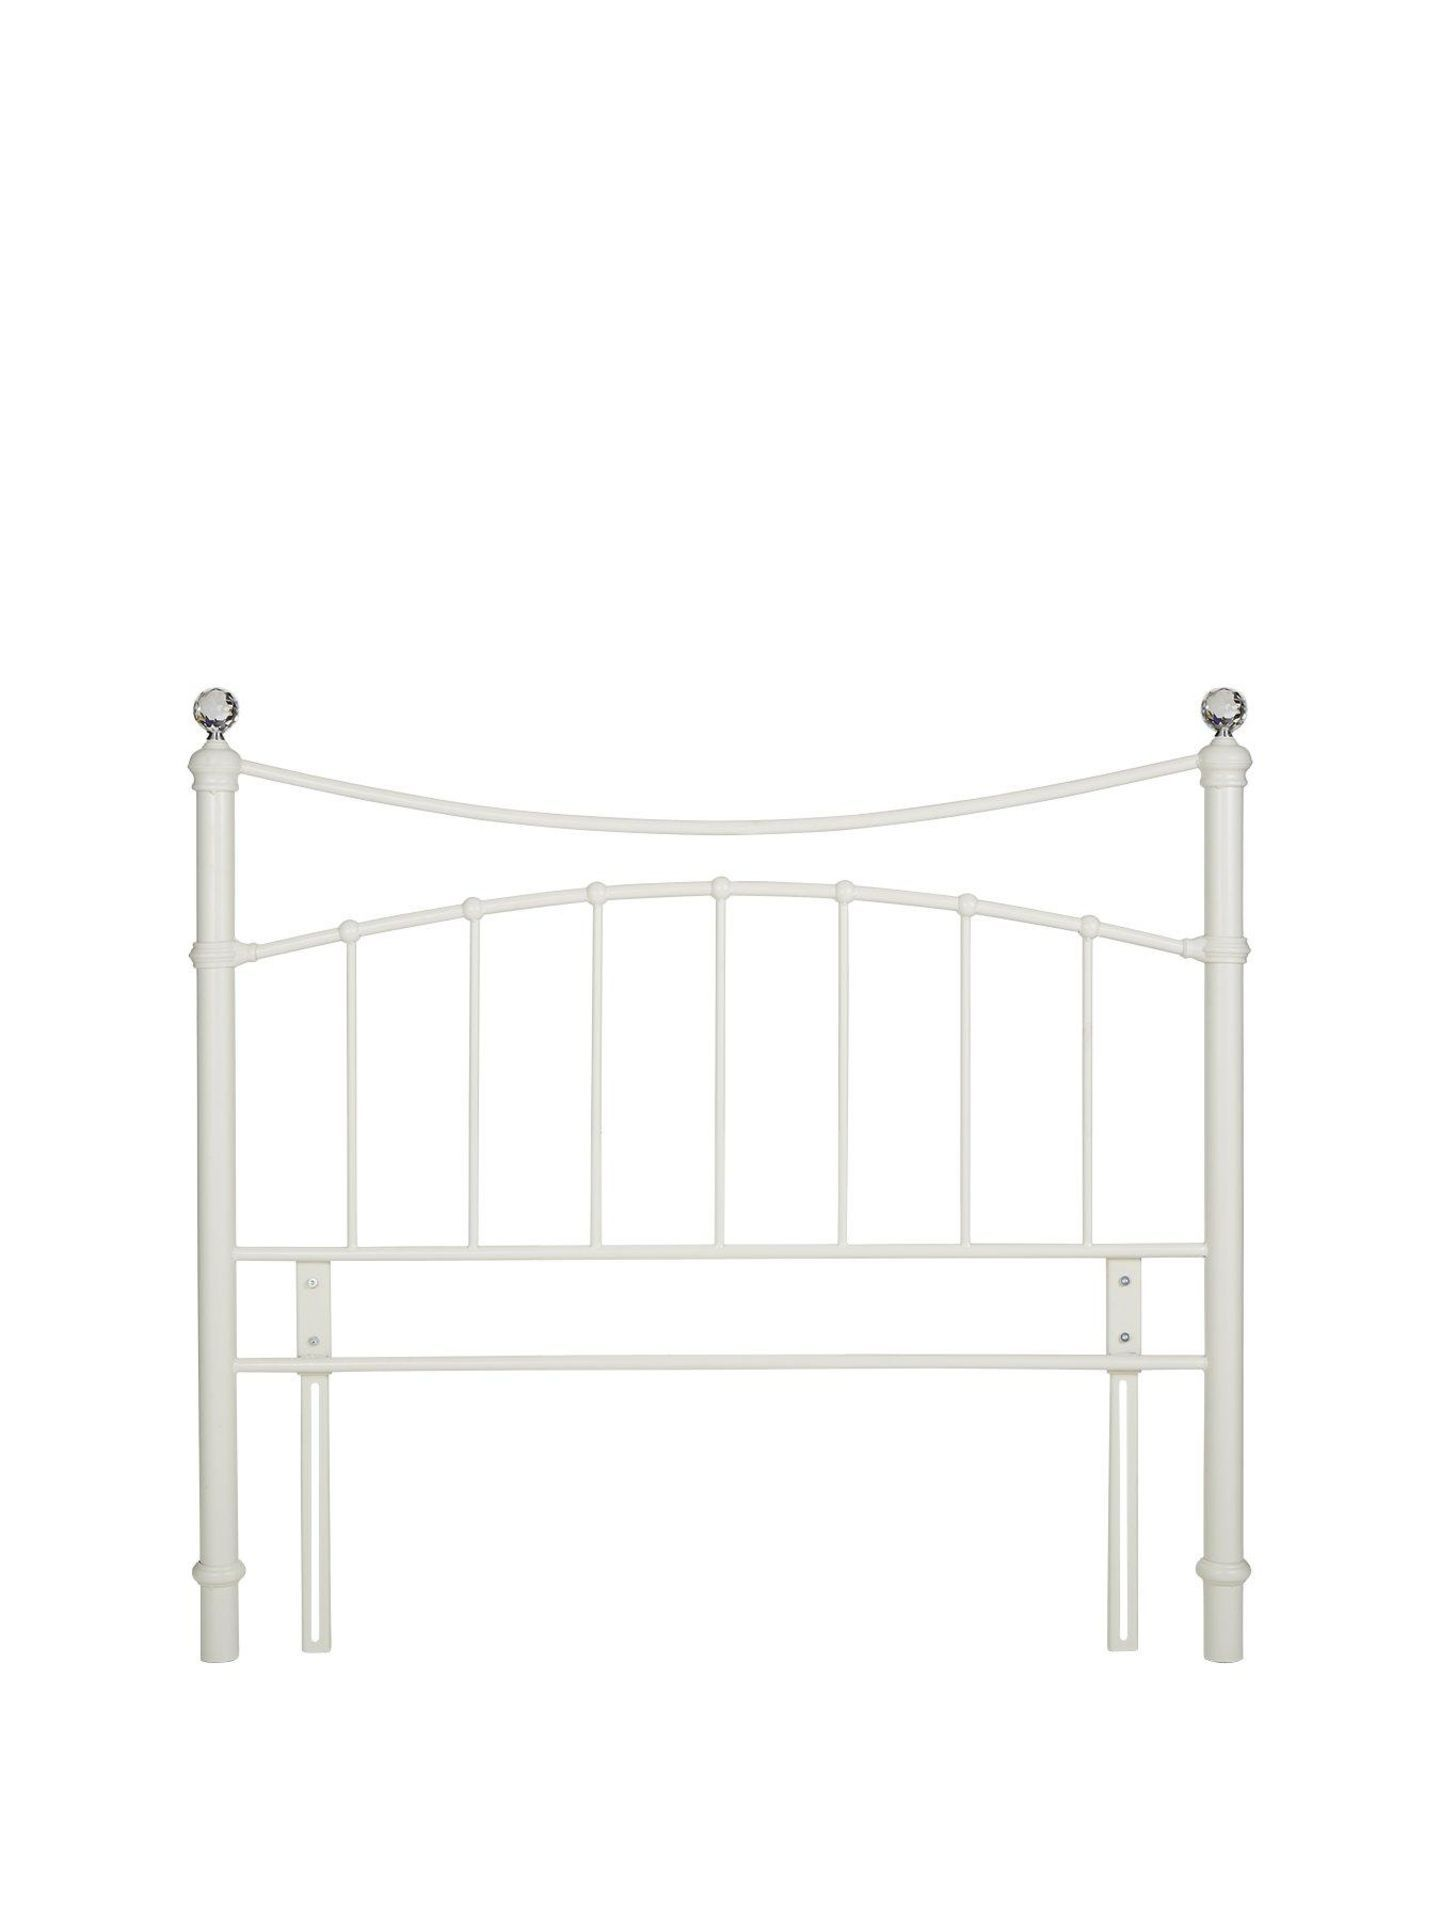 New - Glisten King Headboard [Cream] 130 x1 52 x 10Cm Rrp: 148.00